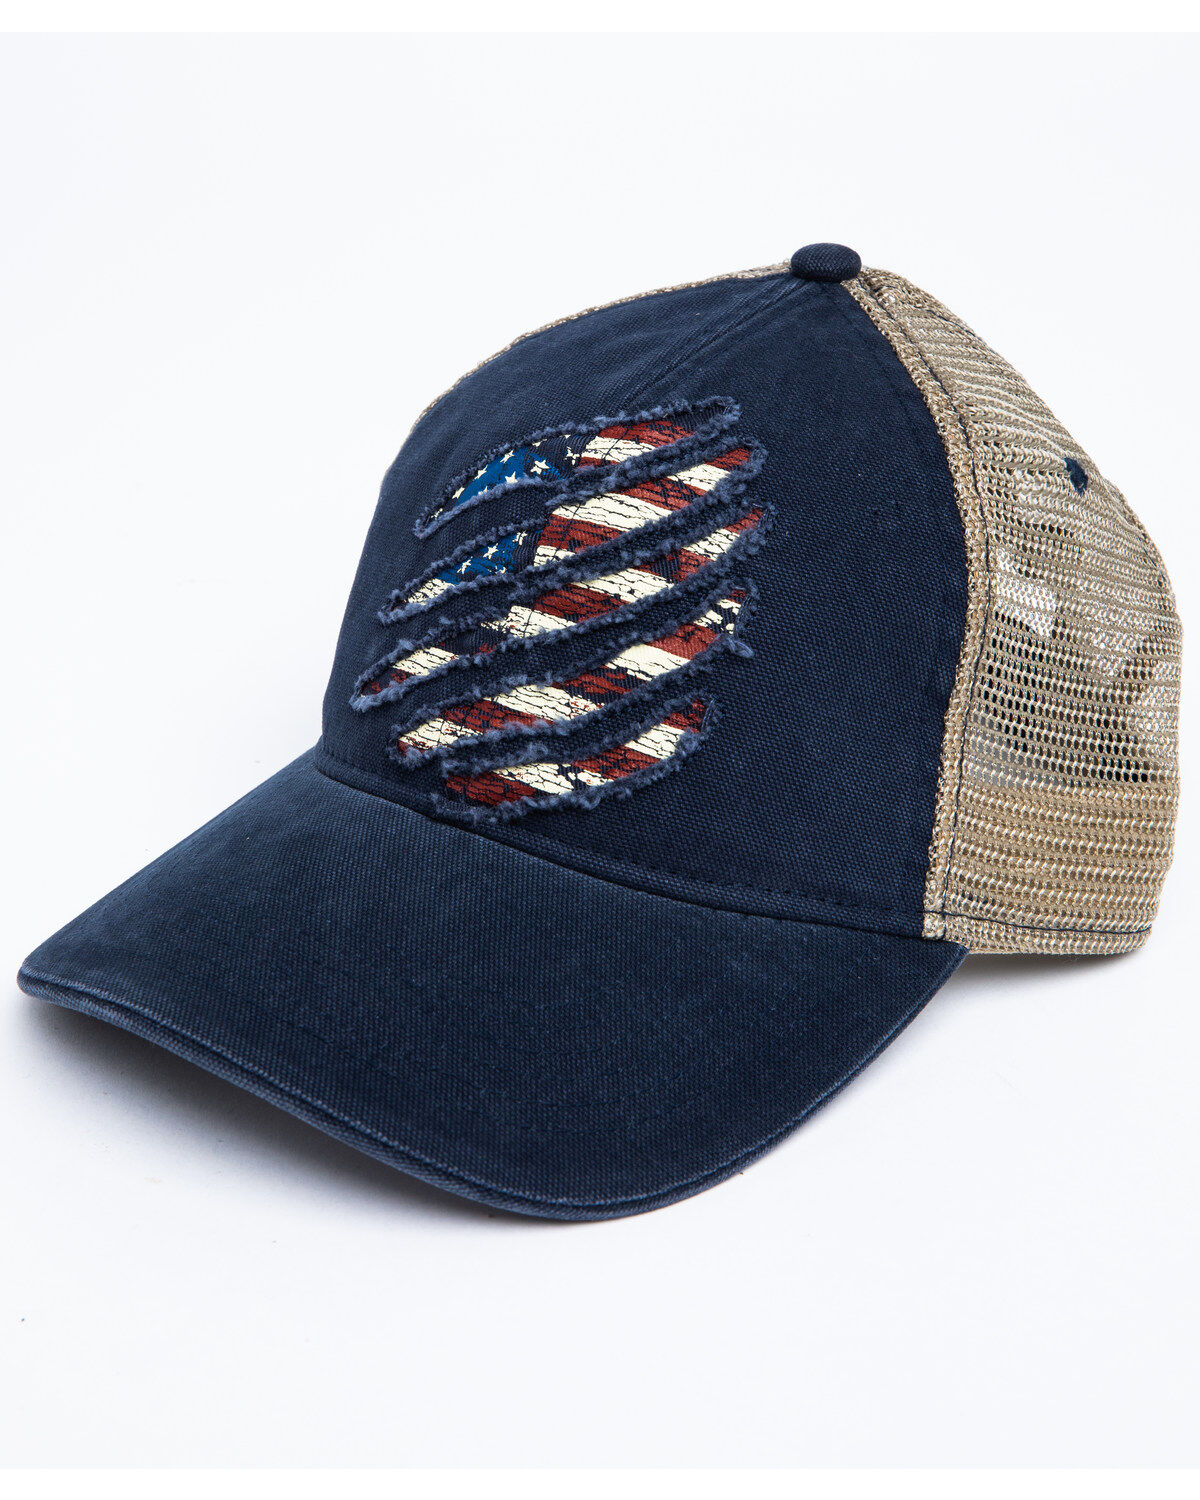 Ron Kite Canada Letter Embroidery Baseball caps Cotton Gorra Curved dad hat Leisure Outdoor Women Men Sports Cap